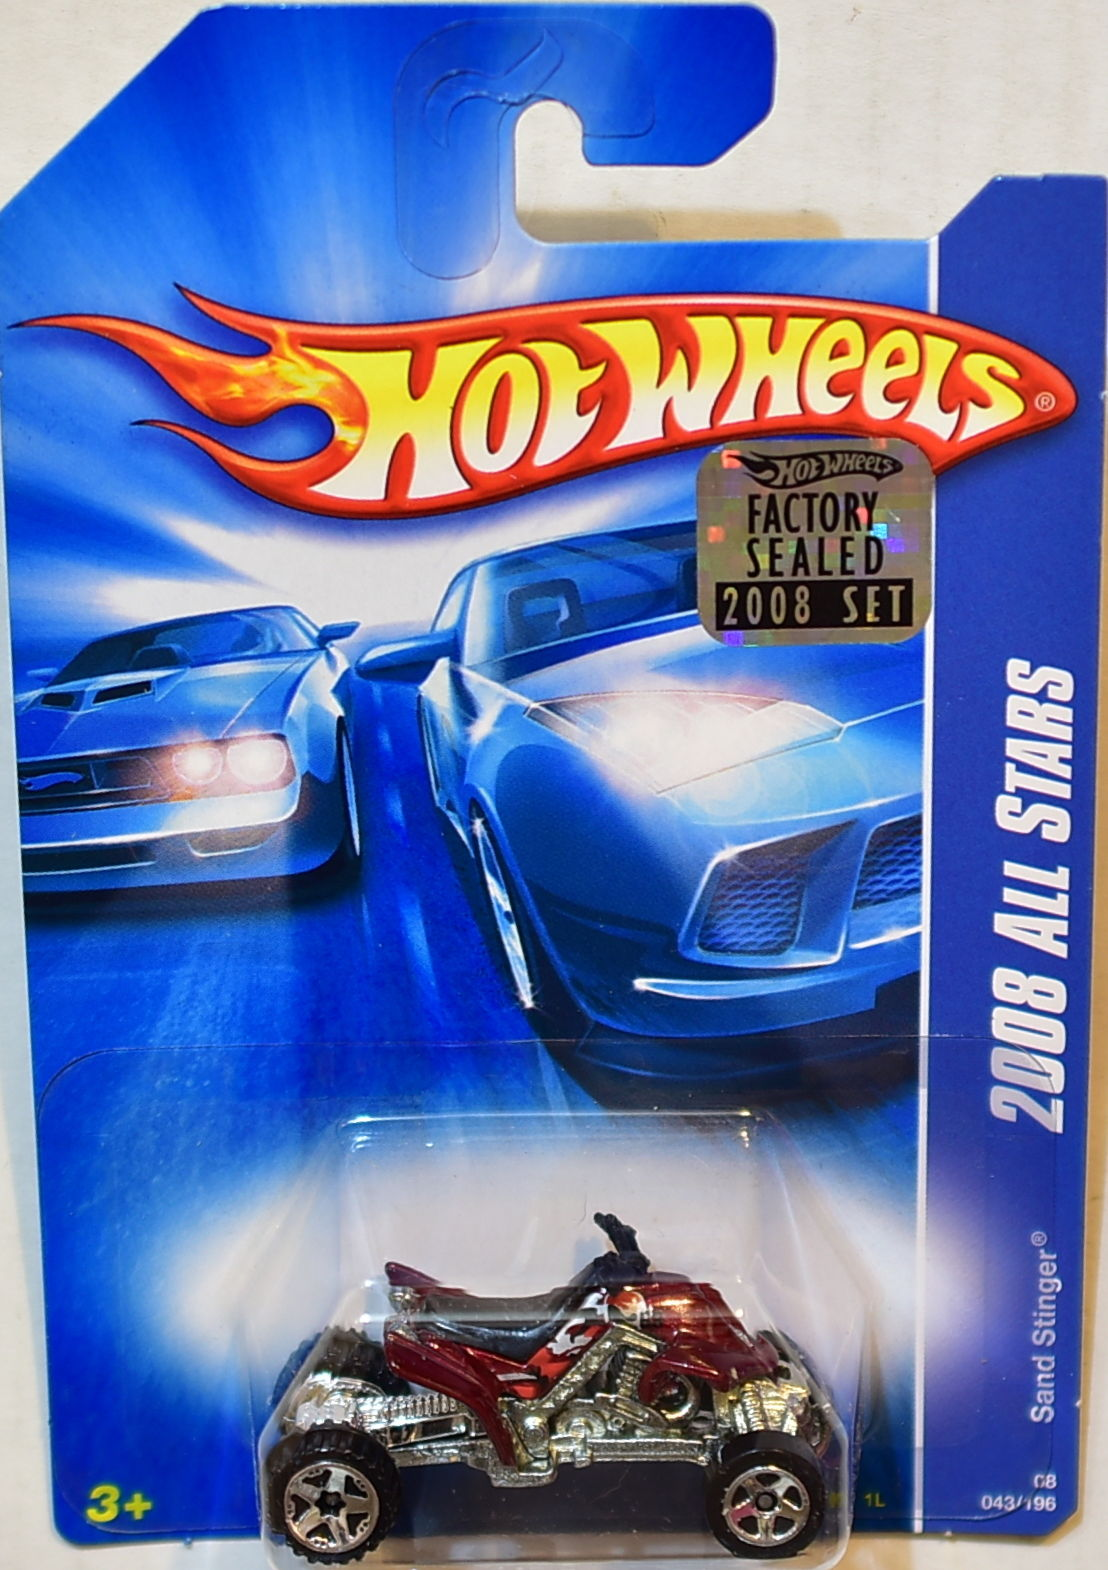 HOT WHEELS 2008 ALL STARS SAND STINGER RED FACTORY SEALED